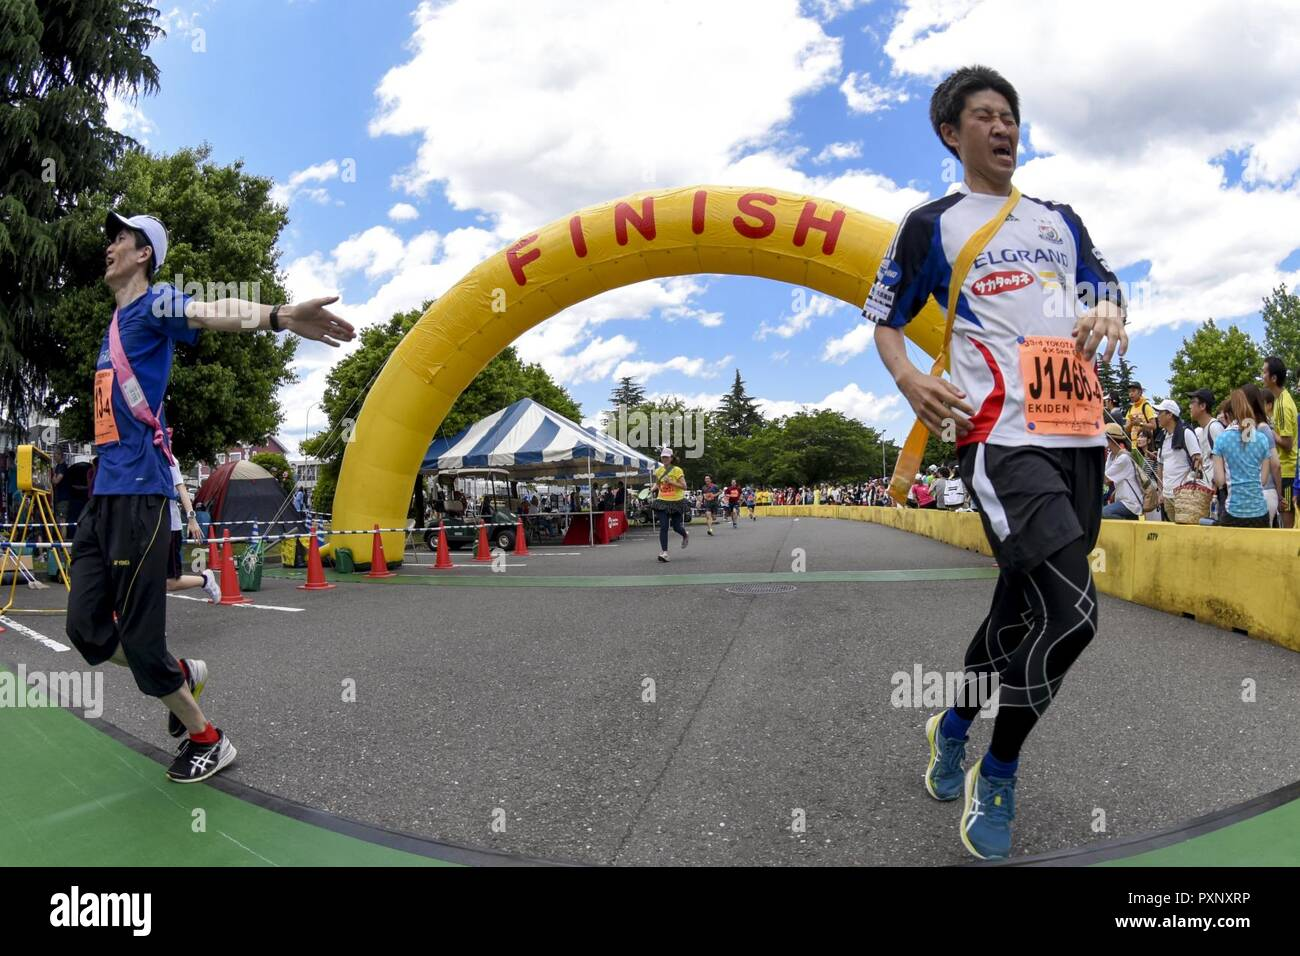 Participants in the Ekiden Race cross the finish line at Yokota Air Base, Japan, June 4, 2017. More than 5,000 runners participated in the event hosted by the Yokota Striders Running Club. - Stock Image